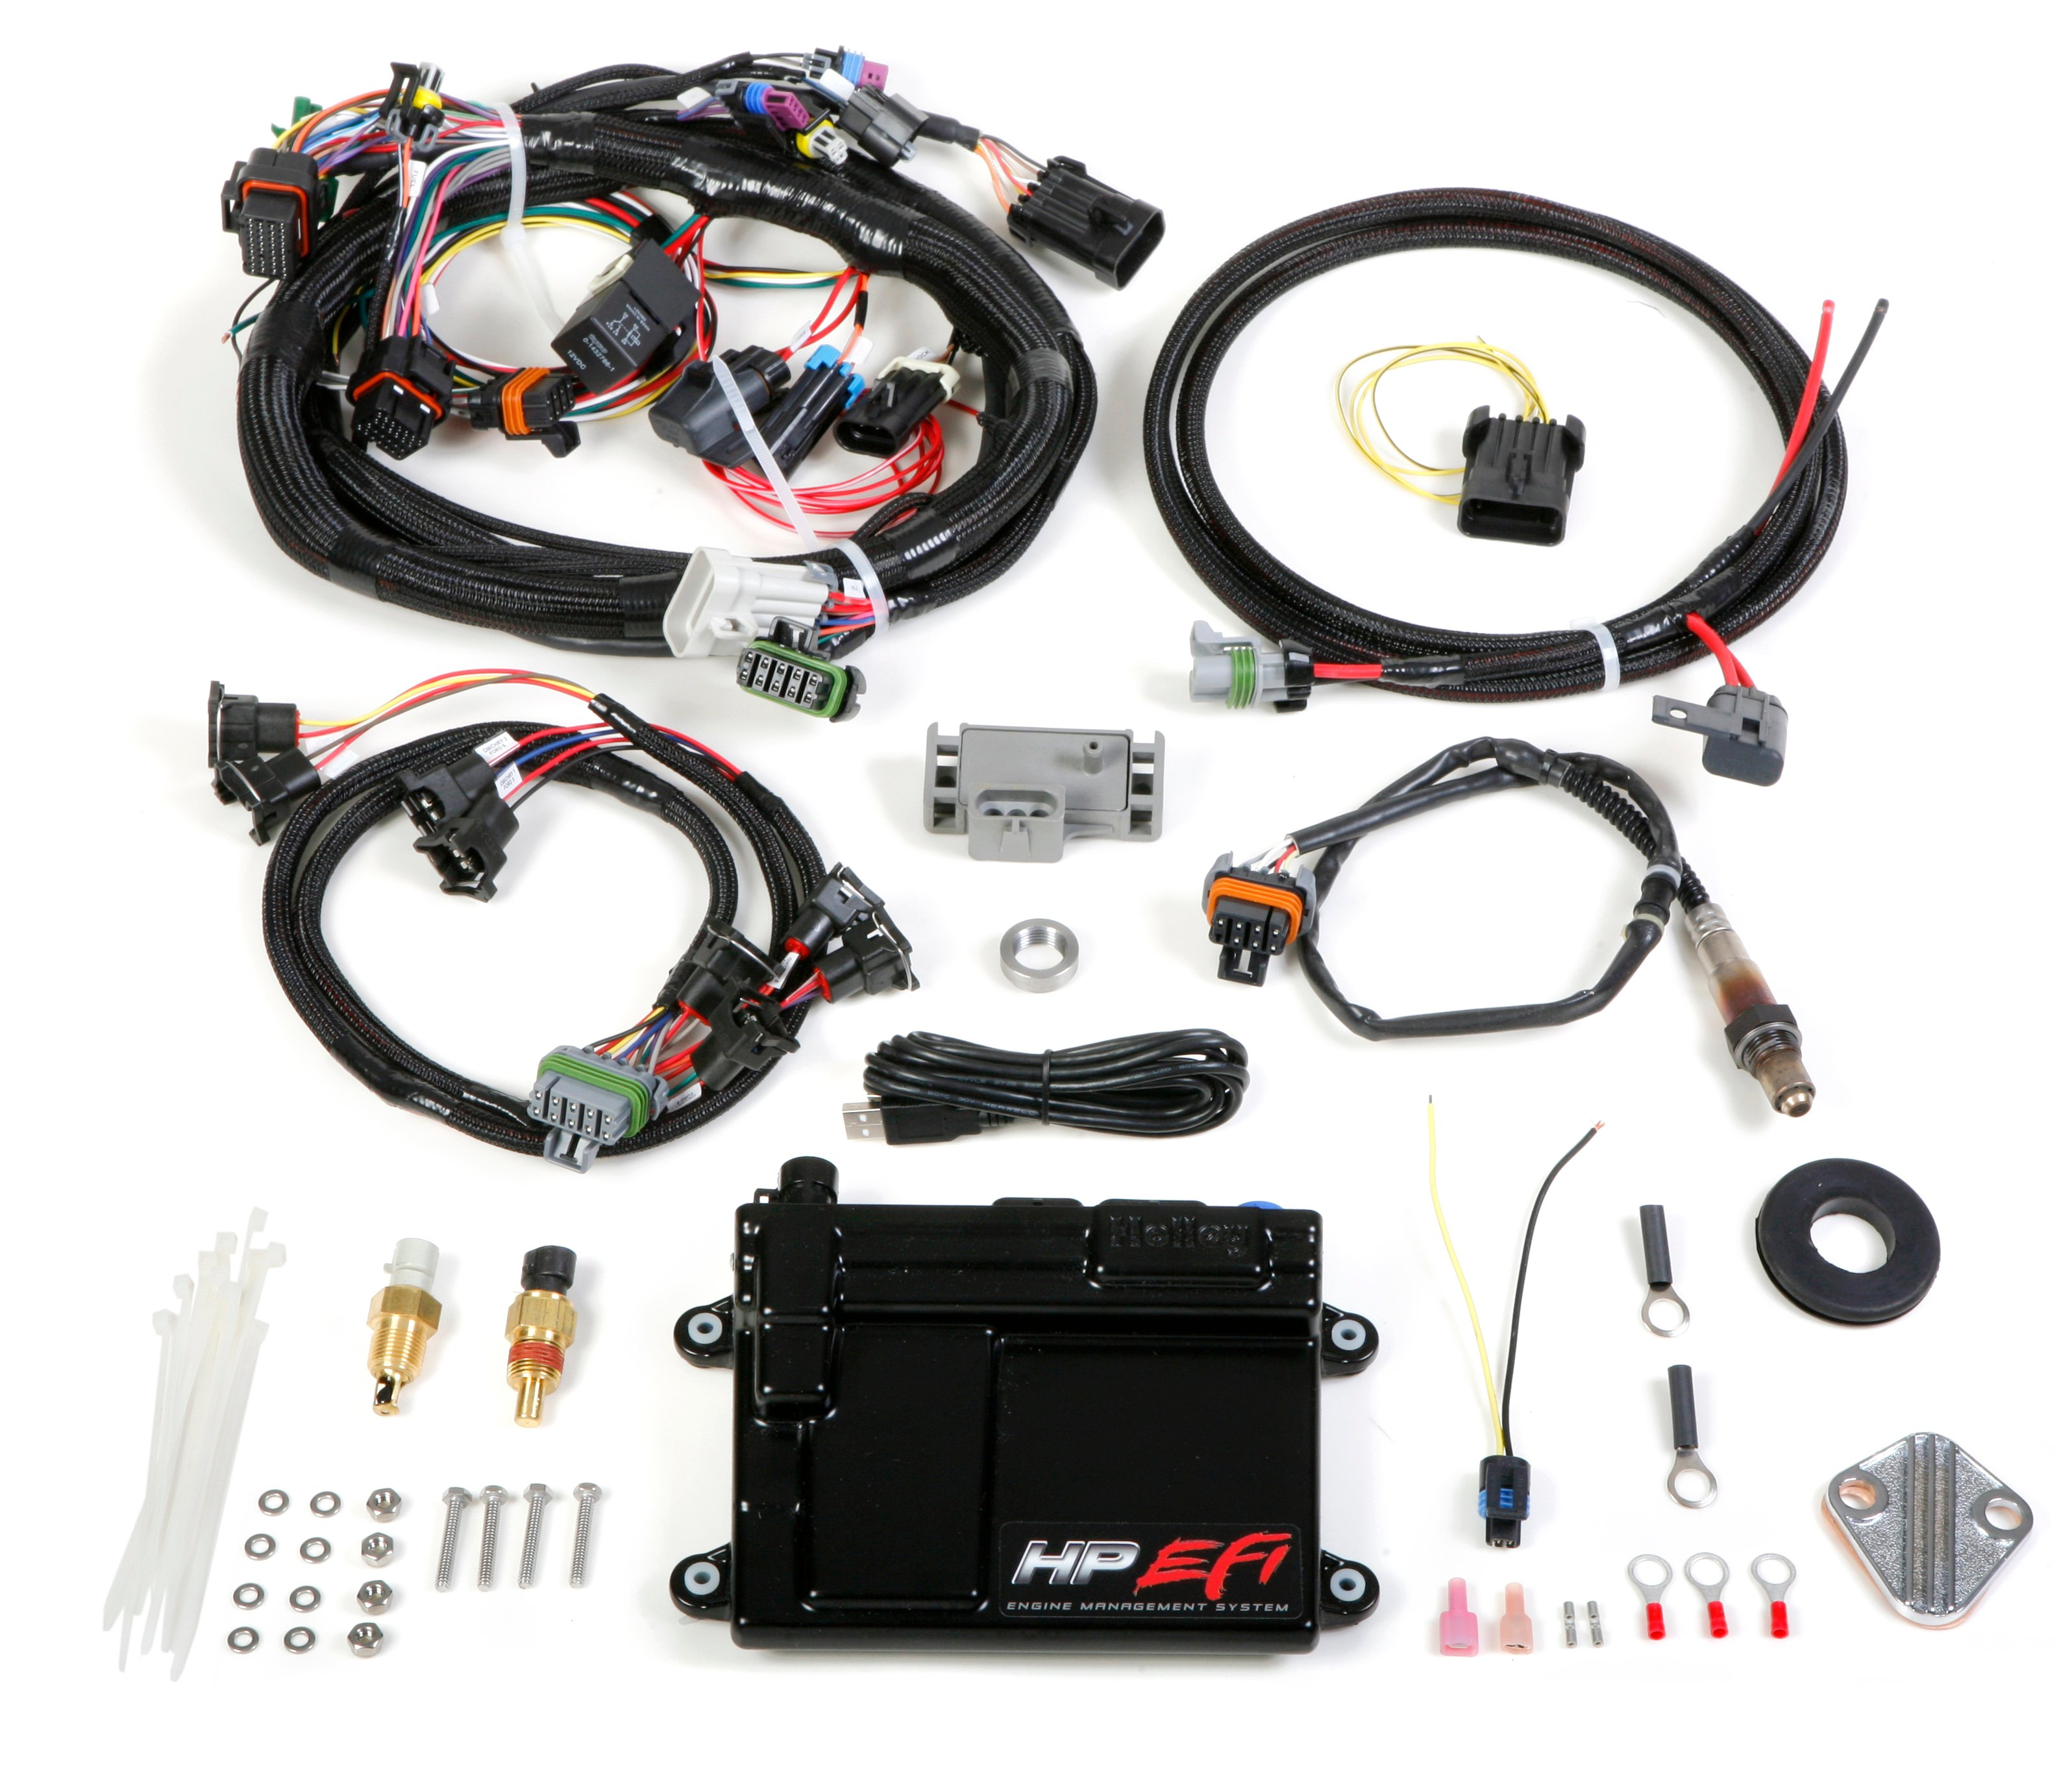 vn v8 ecu wiring diagram 2003 softail holley efi 550 604 hp and harness kits